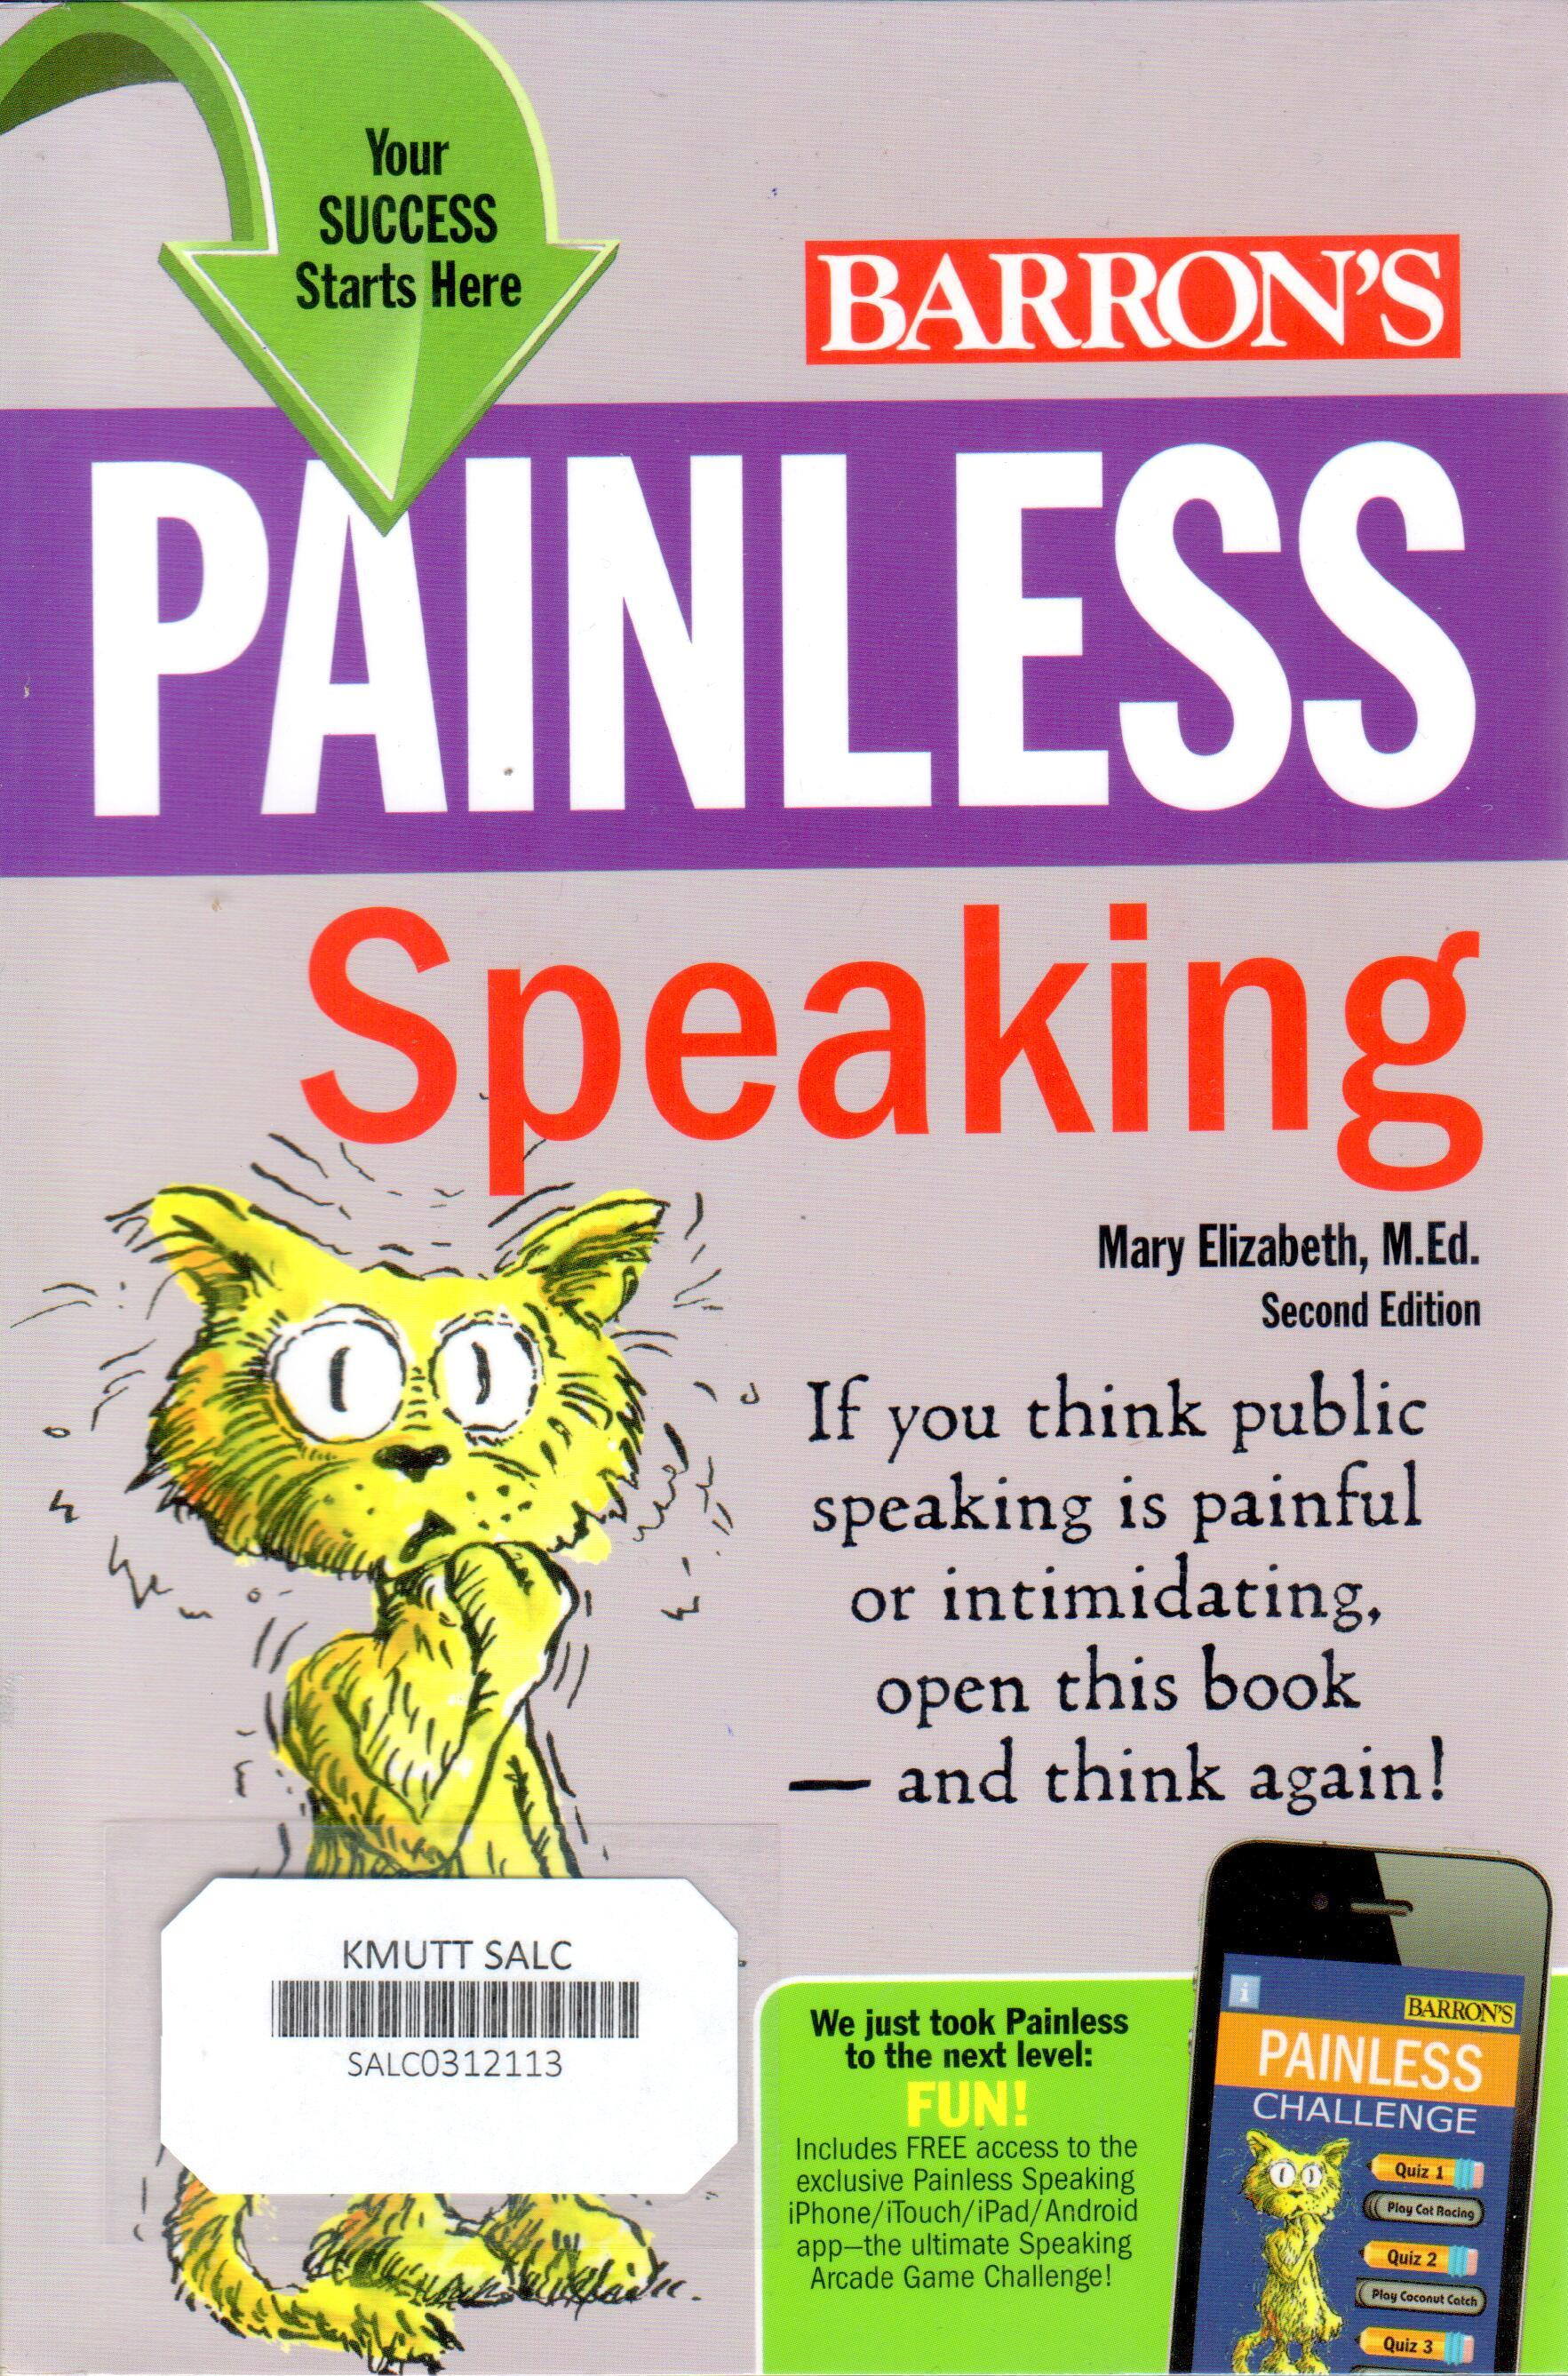 Painless Speaking (Second Edition)